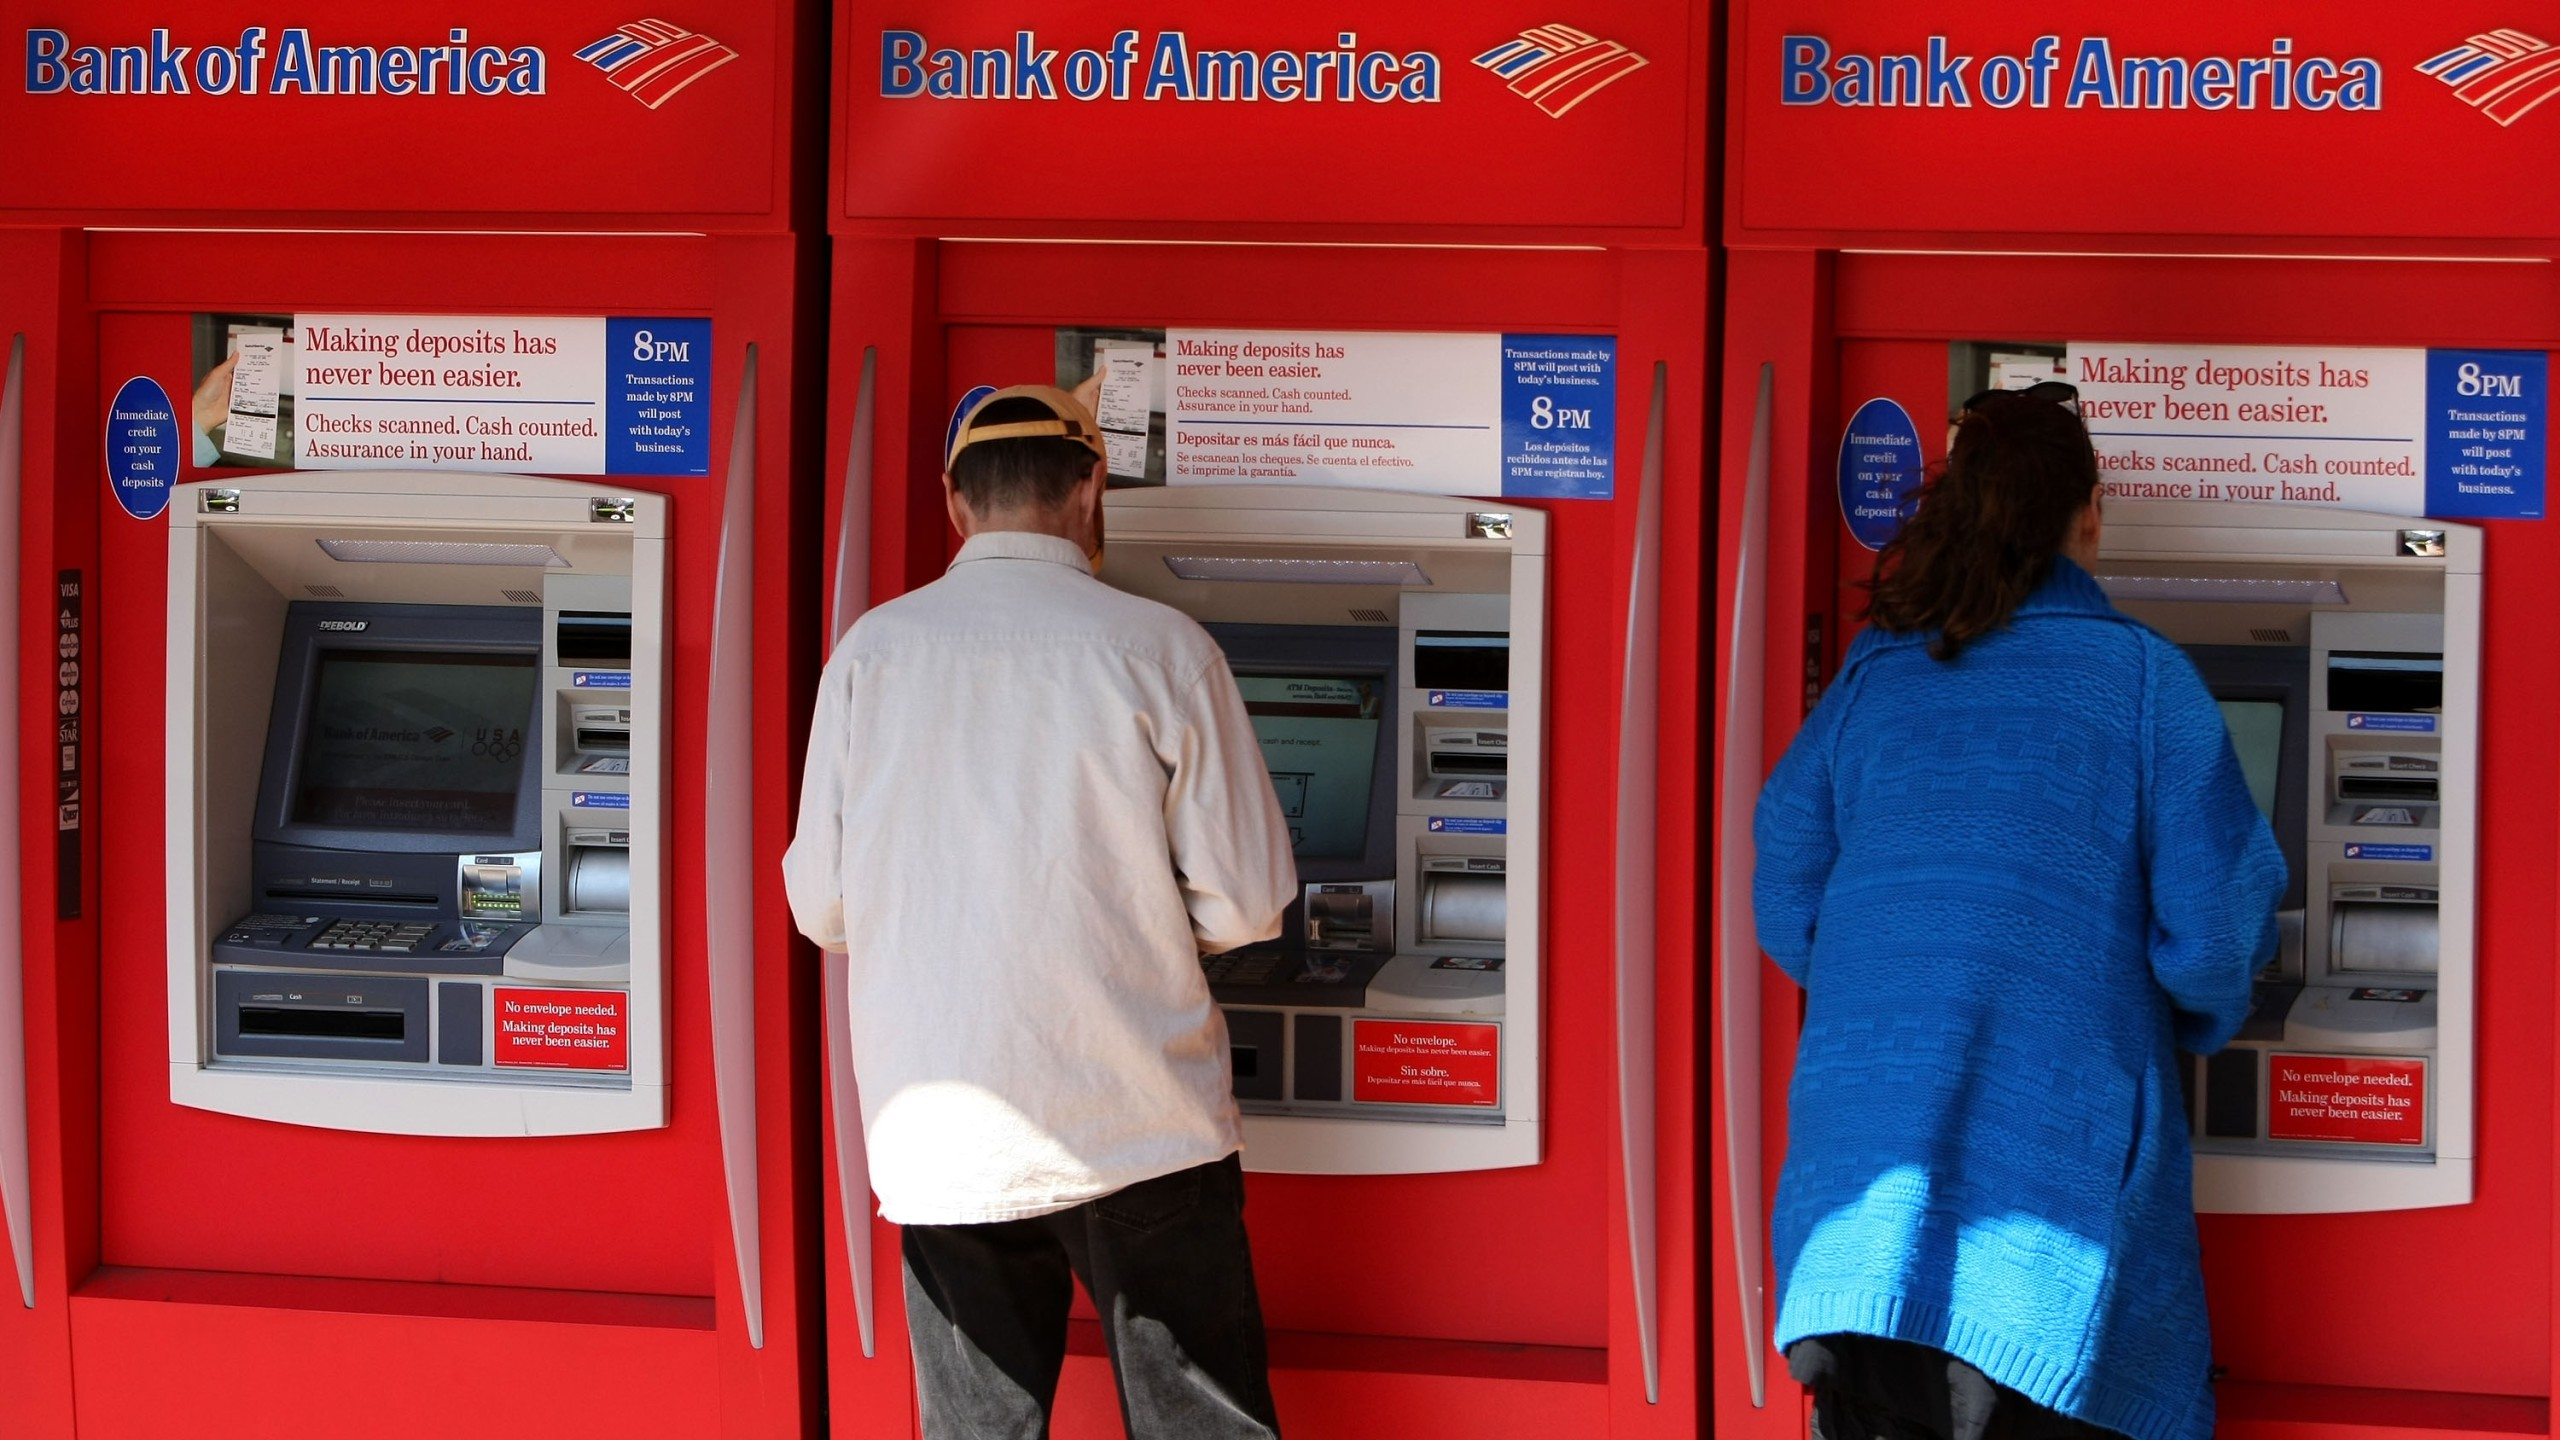 Customers use ATM machines at a Bank of America branch office in San Francisco on April 21, 2008. (Credit: Justin Sullivan / Getty Images)